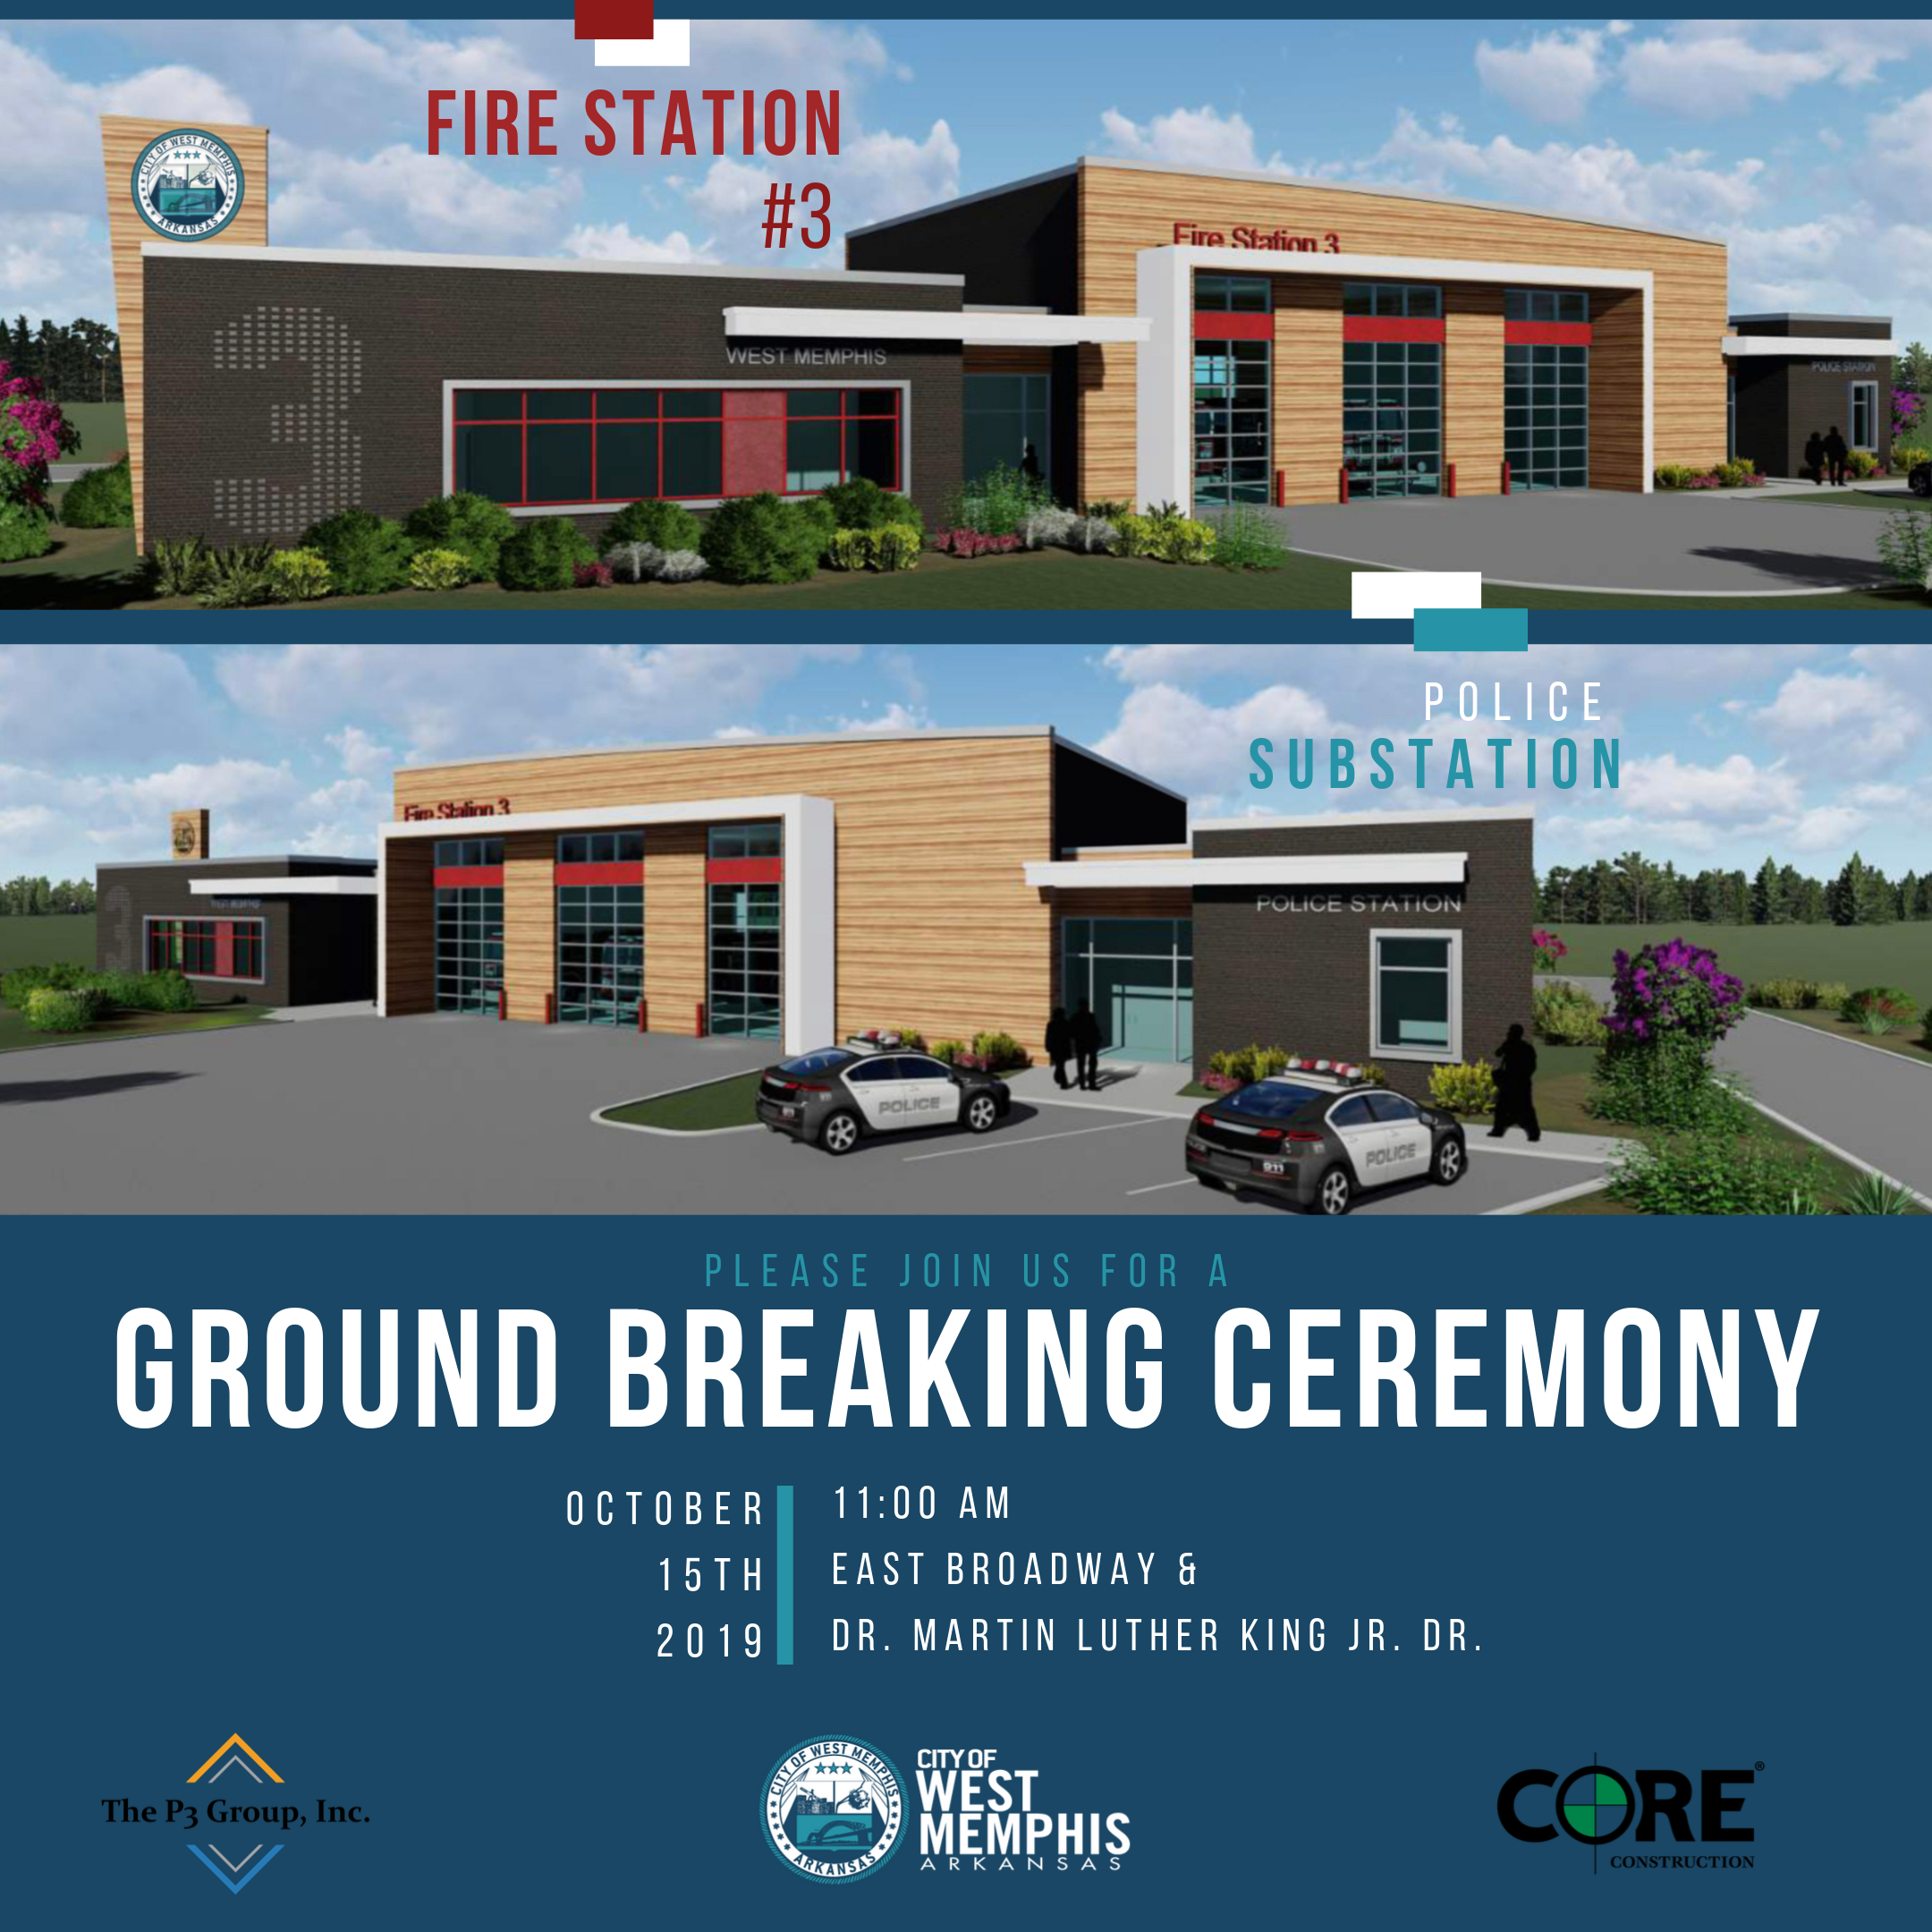 west memphis fire department ground breaking ceremony invitation